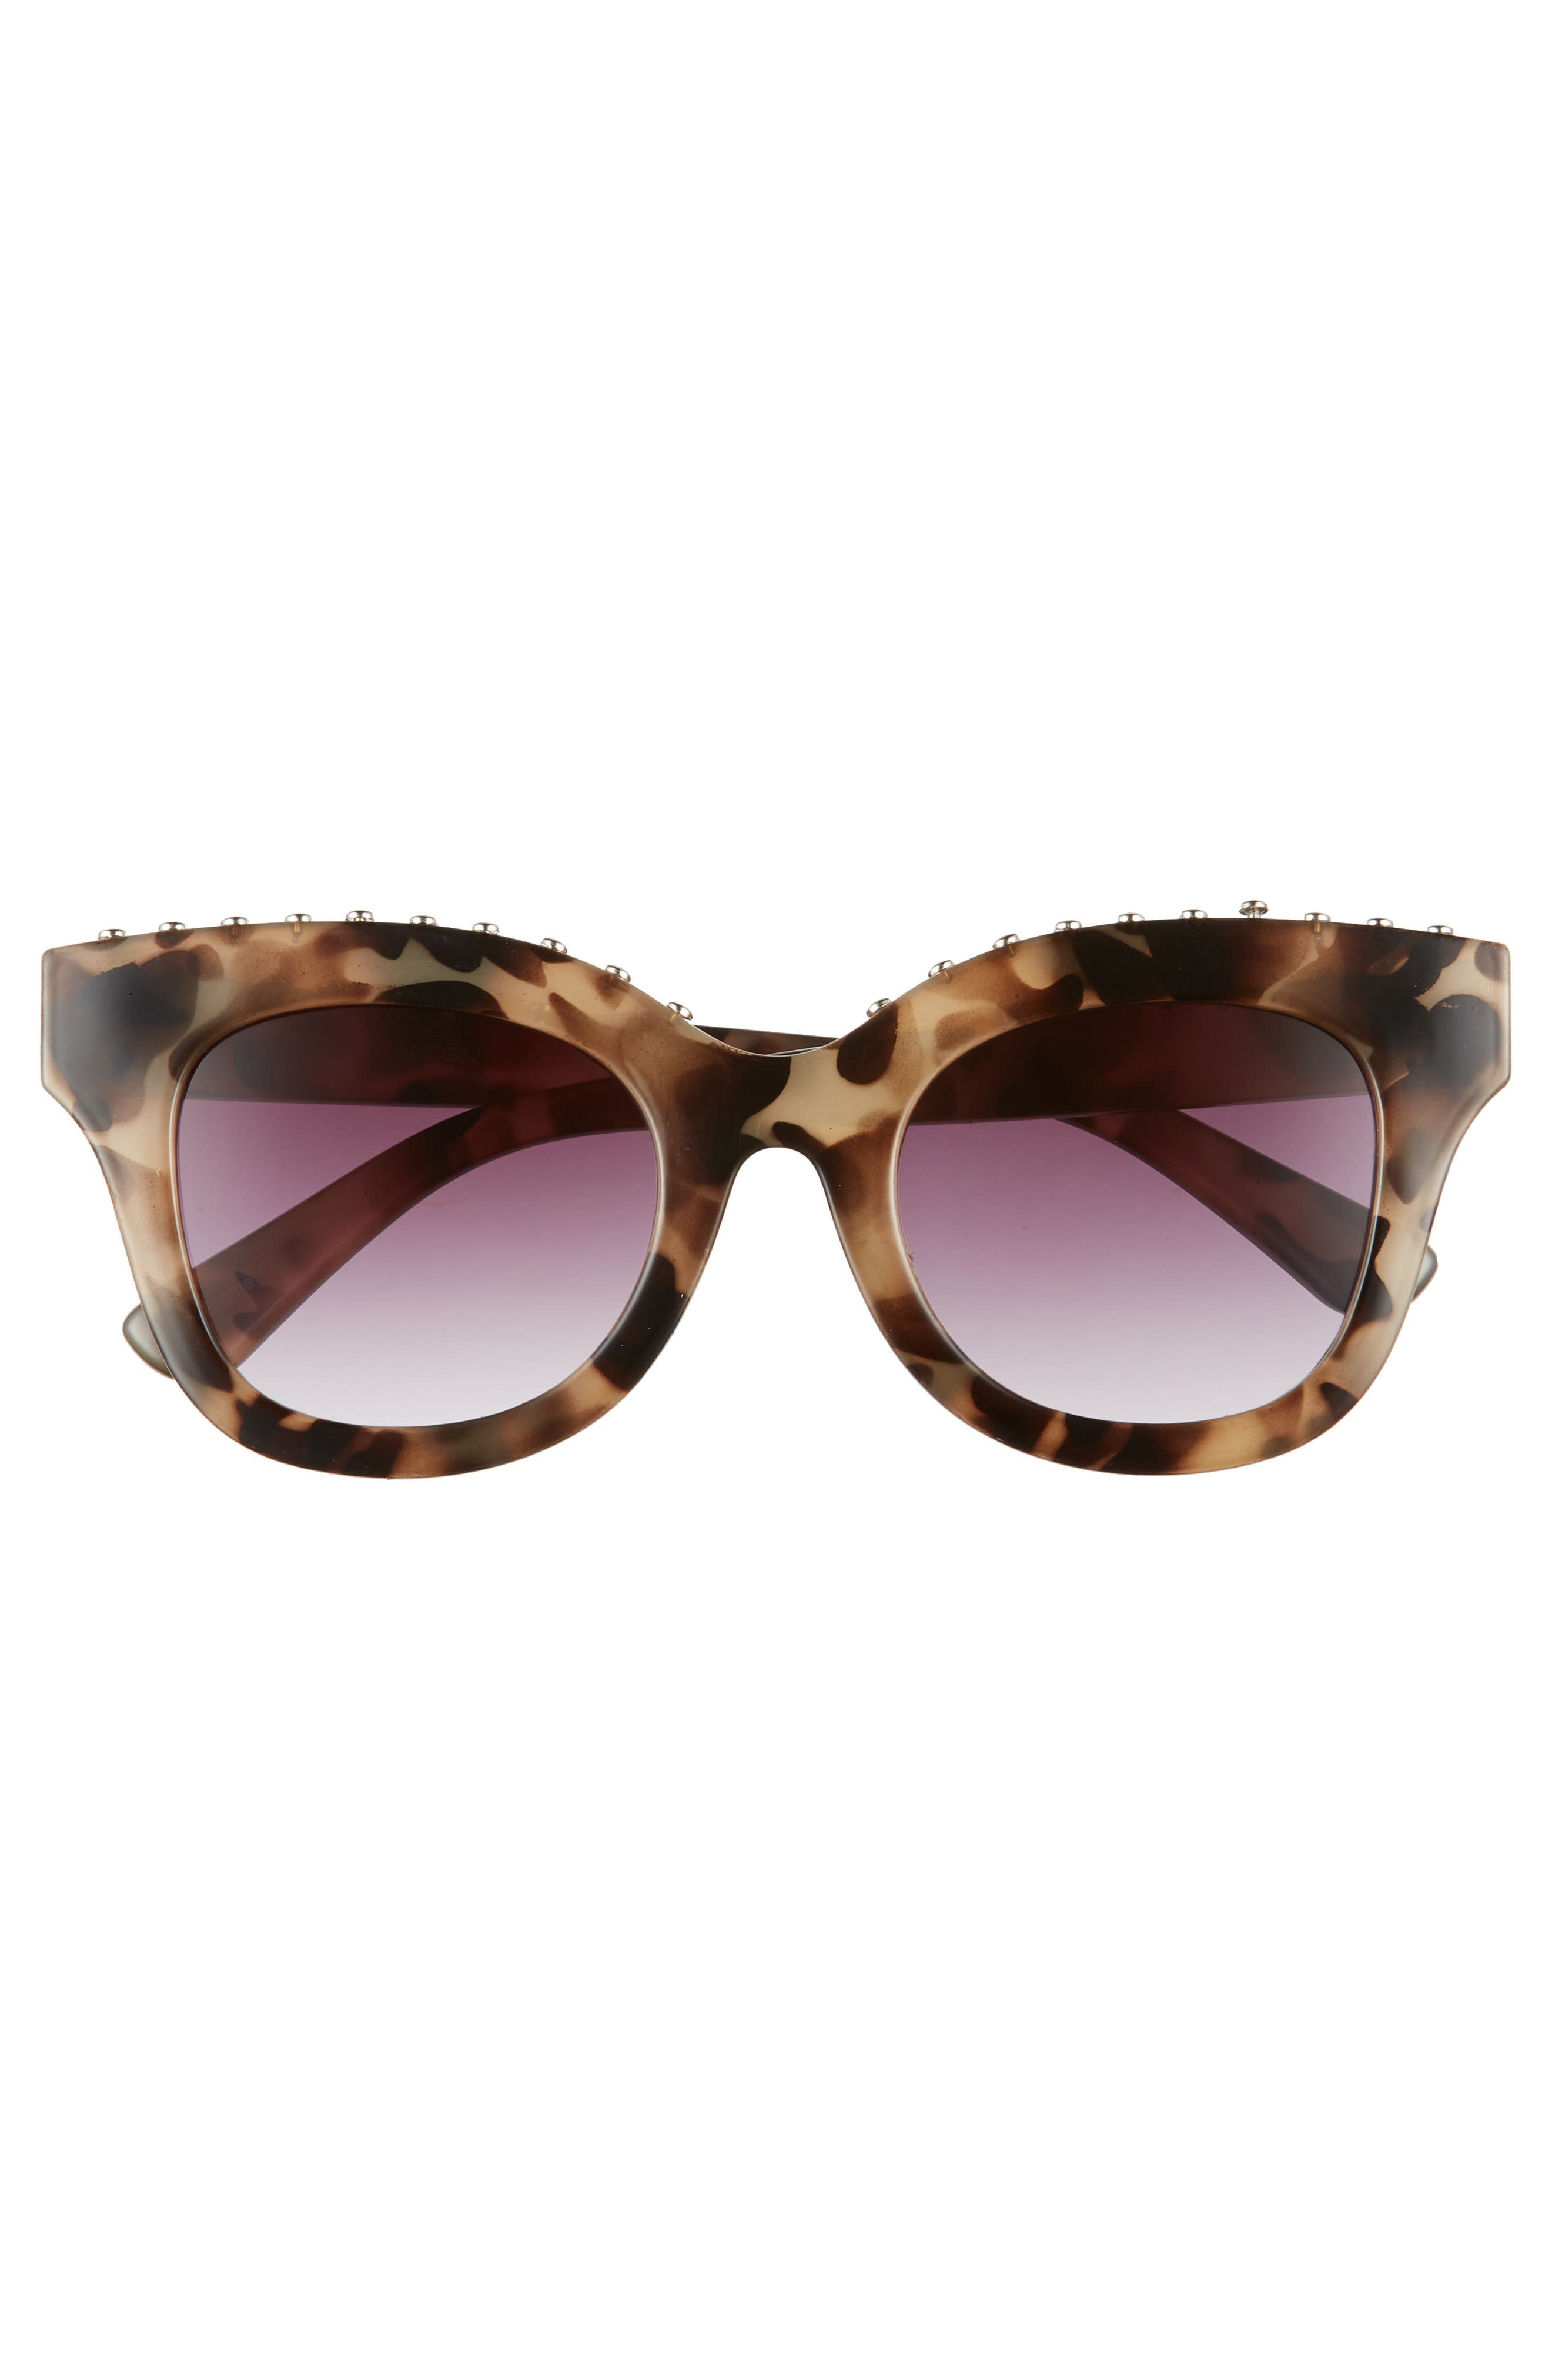 48mm Studded Sunglasses,                             Alternate thumbnail 3, color,                             200